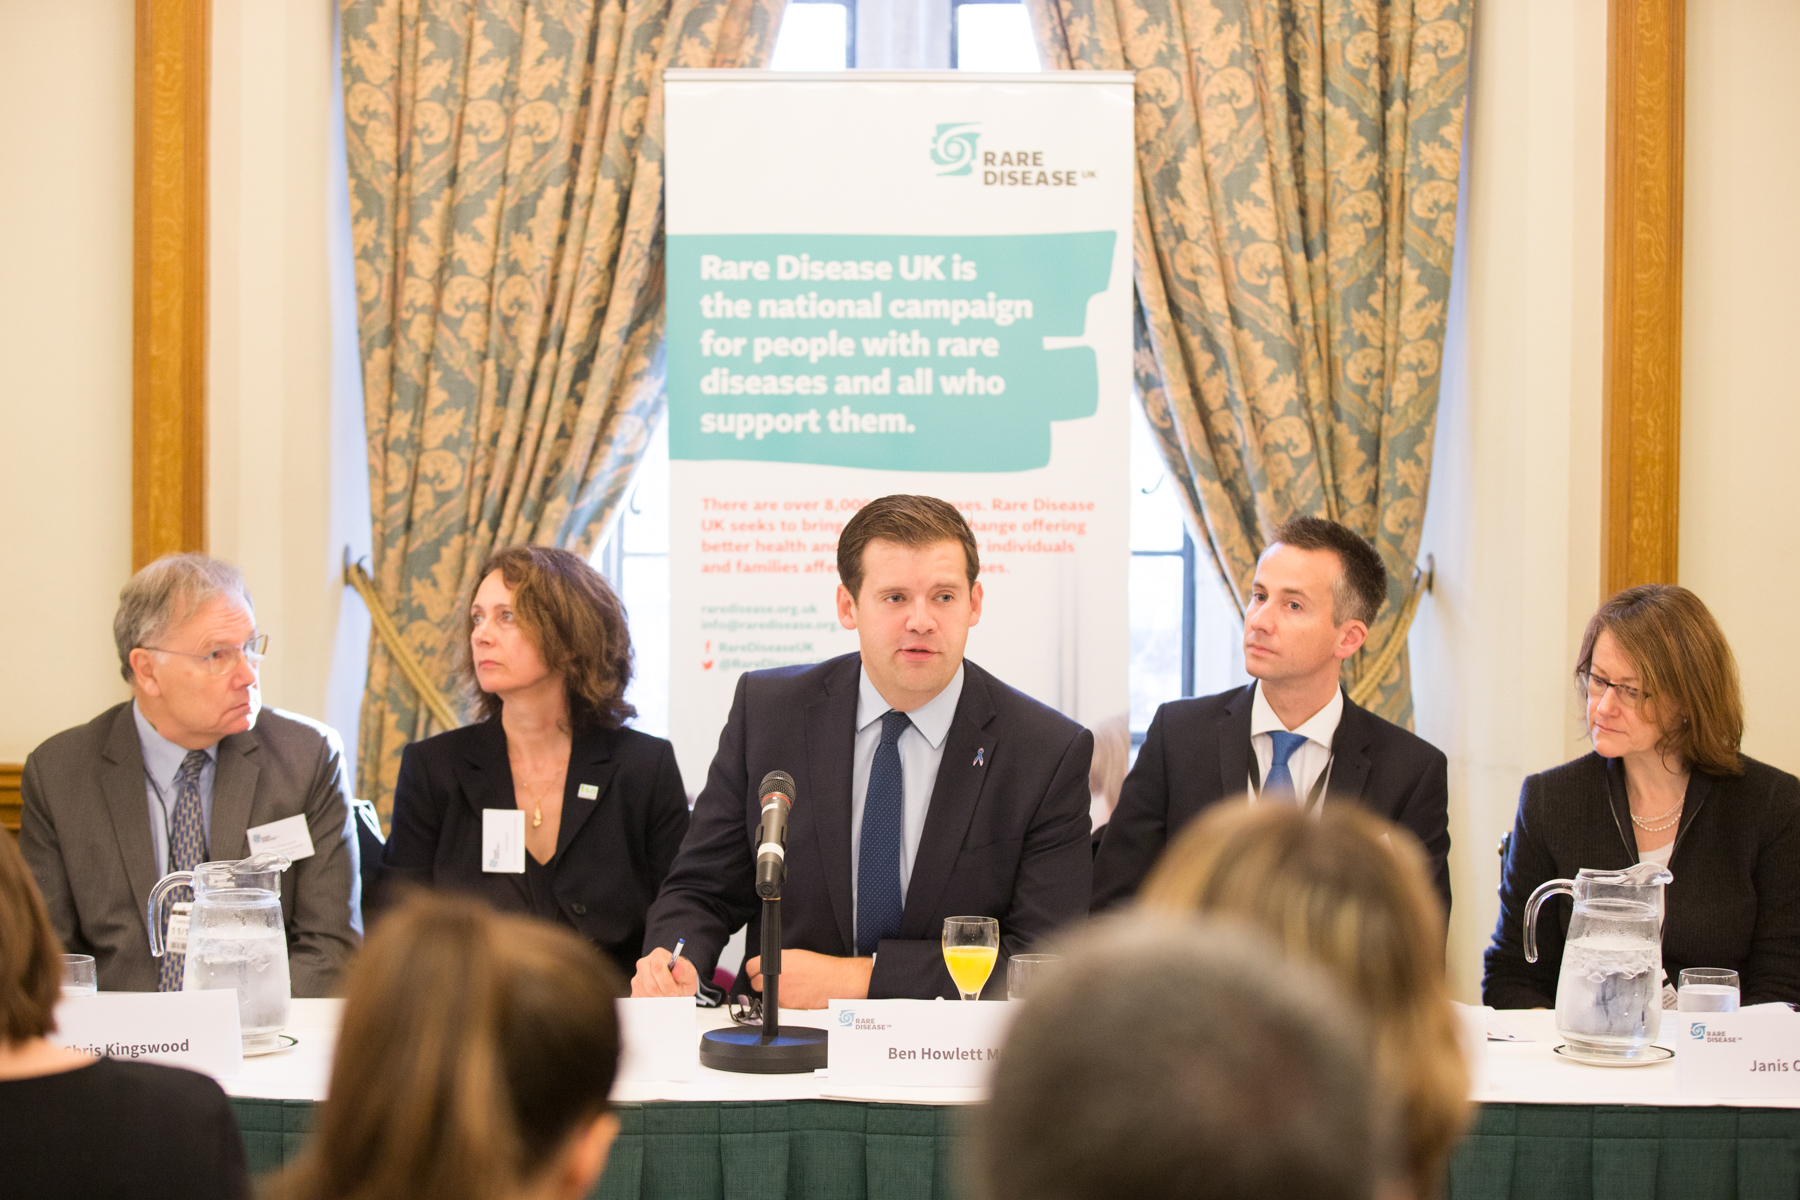 All Party Parliamentary Group hearing on access to medicines in England